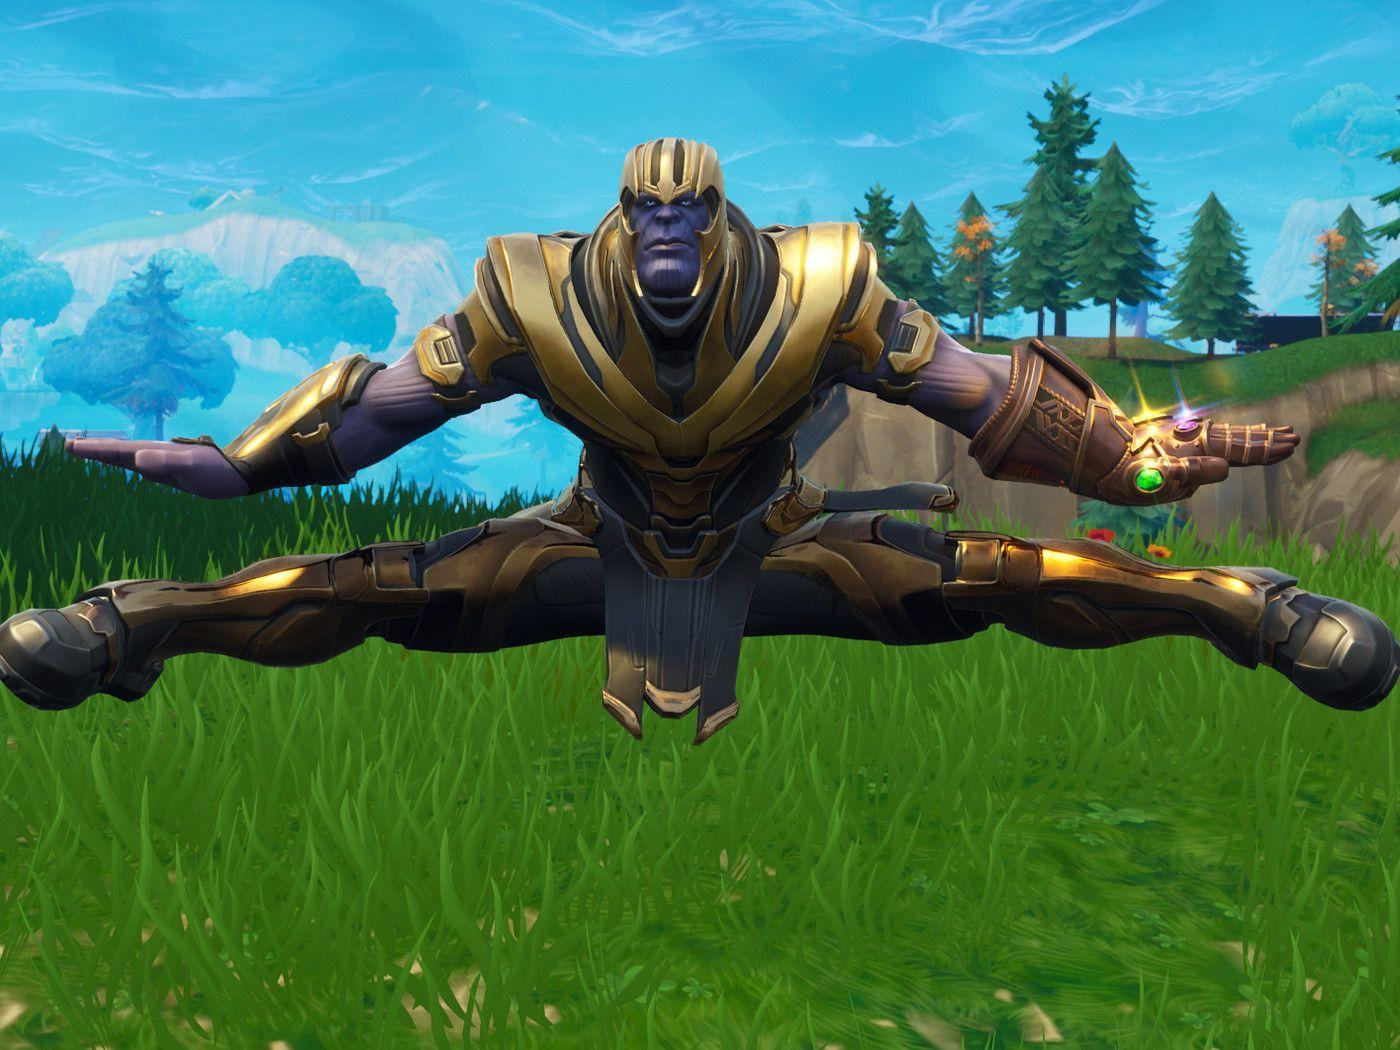 Play as a Dancing Thanos In Fortnite